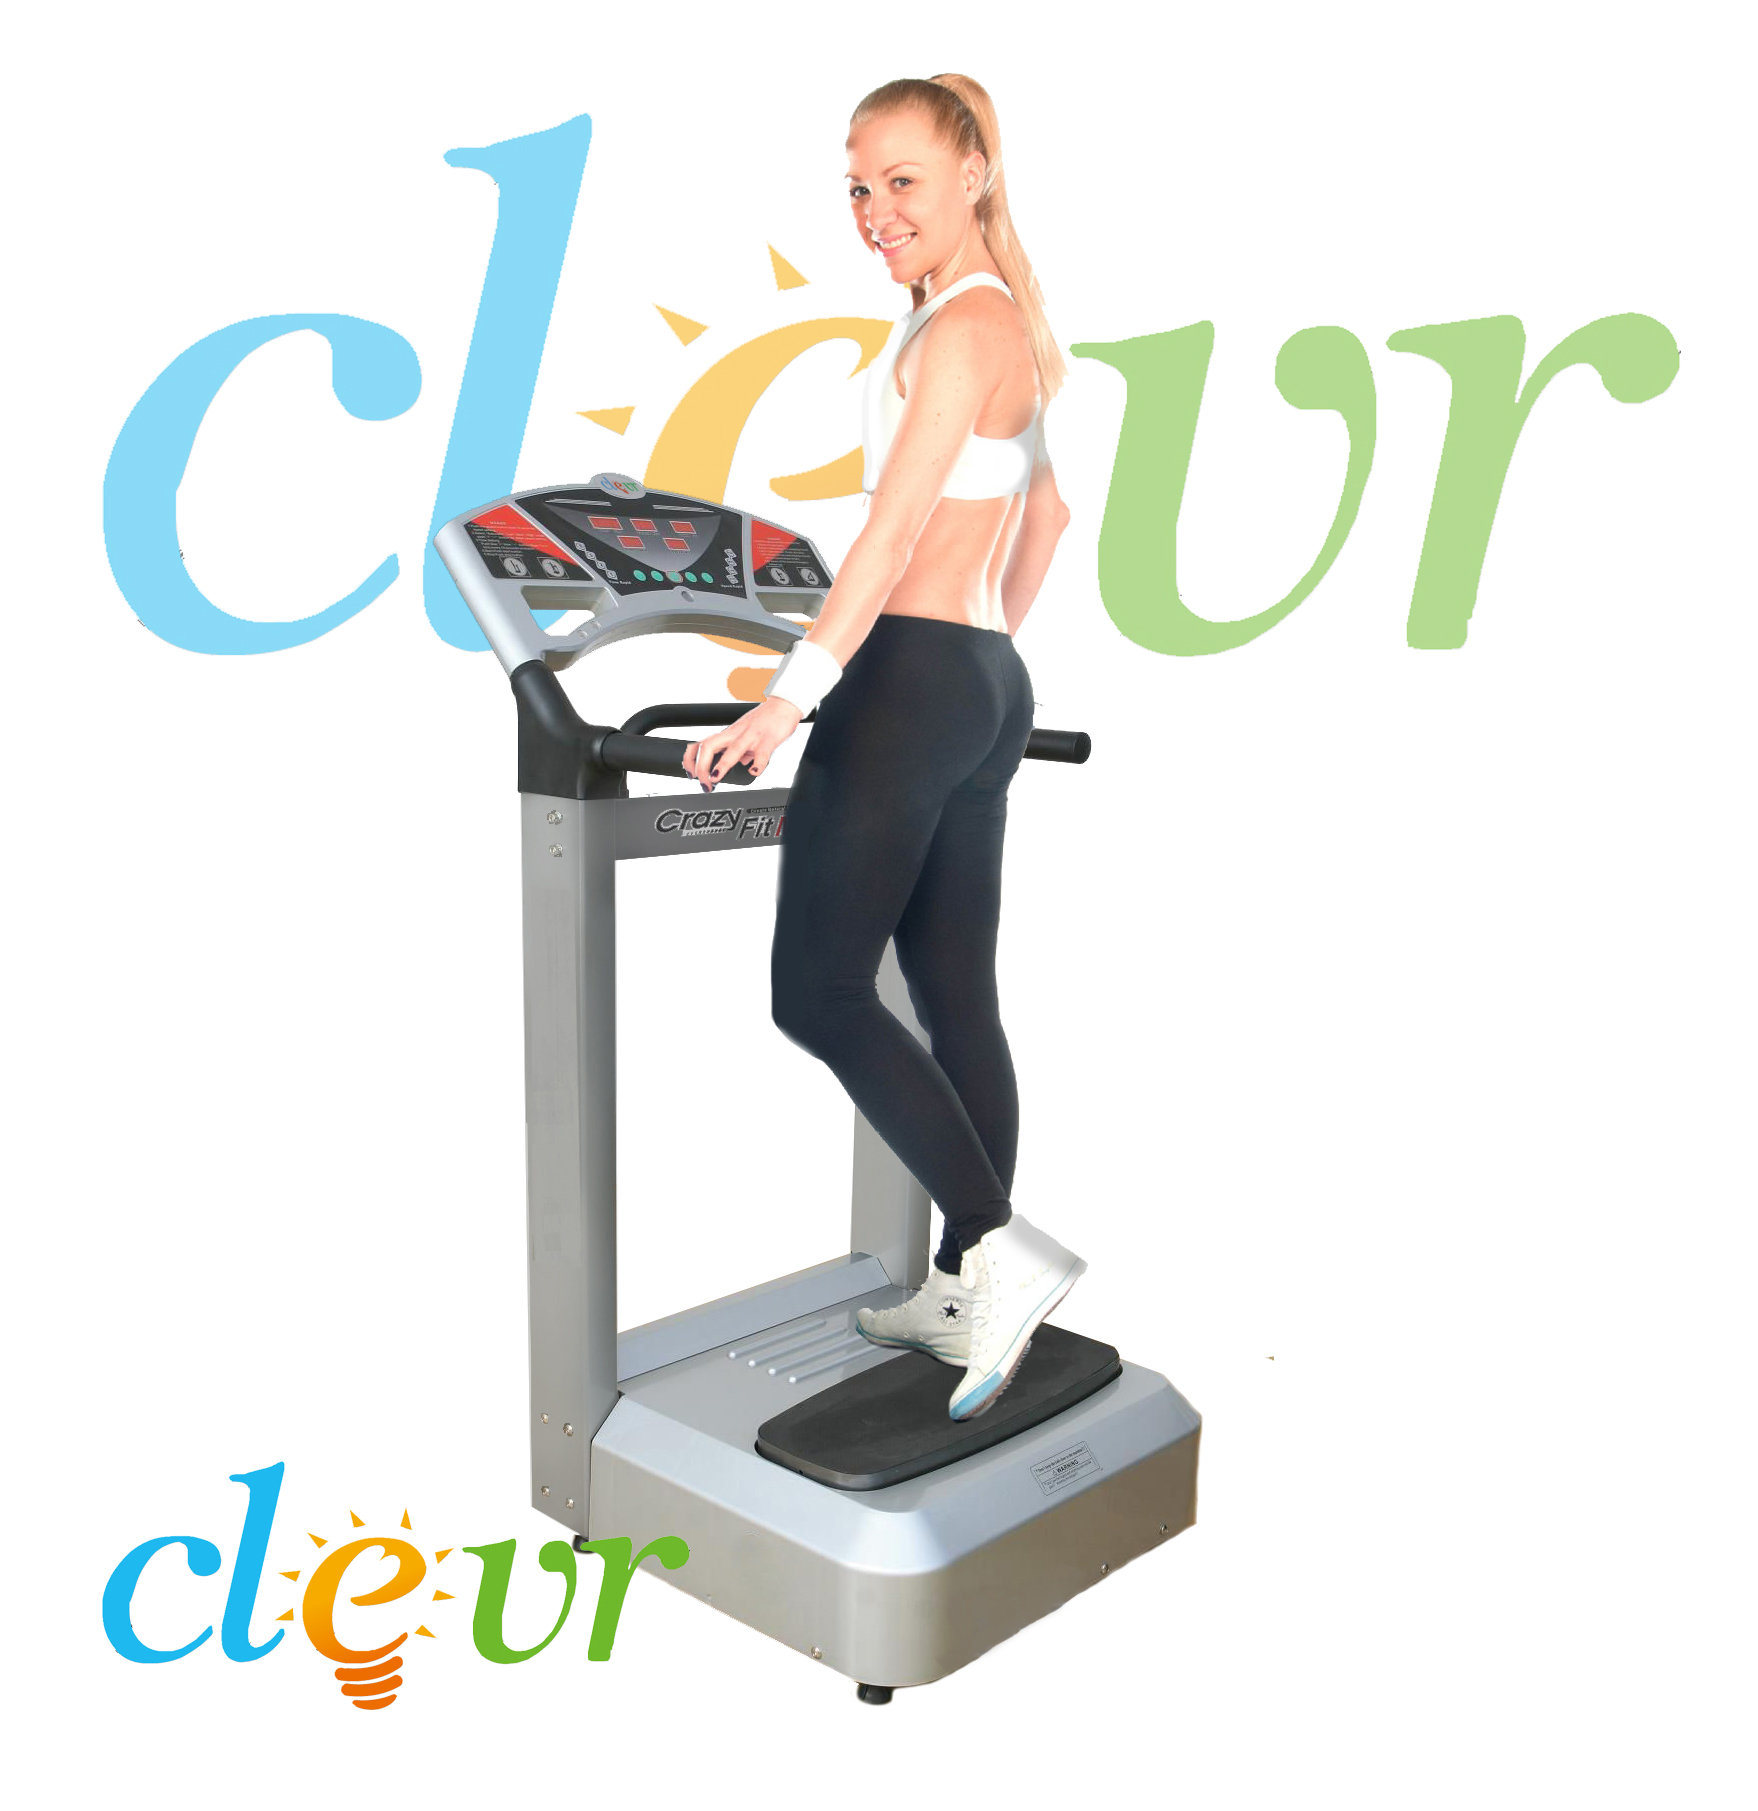 Clevr? Pro 1000w Full Body Vibration Massage Machine Platform Crazy Fitness Harmonics at Sears.com